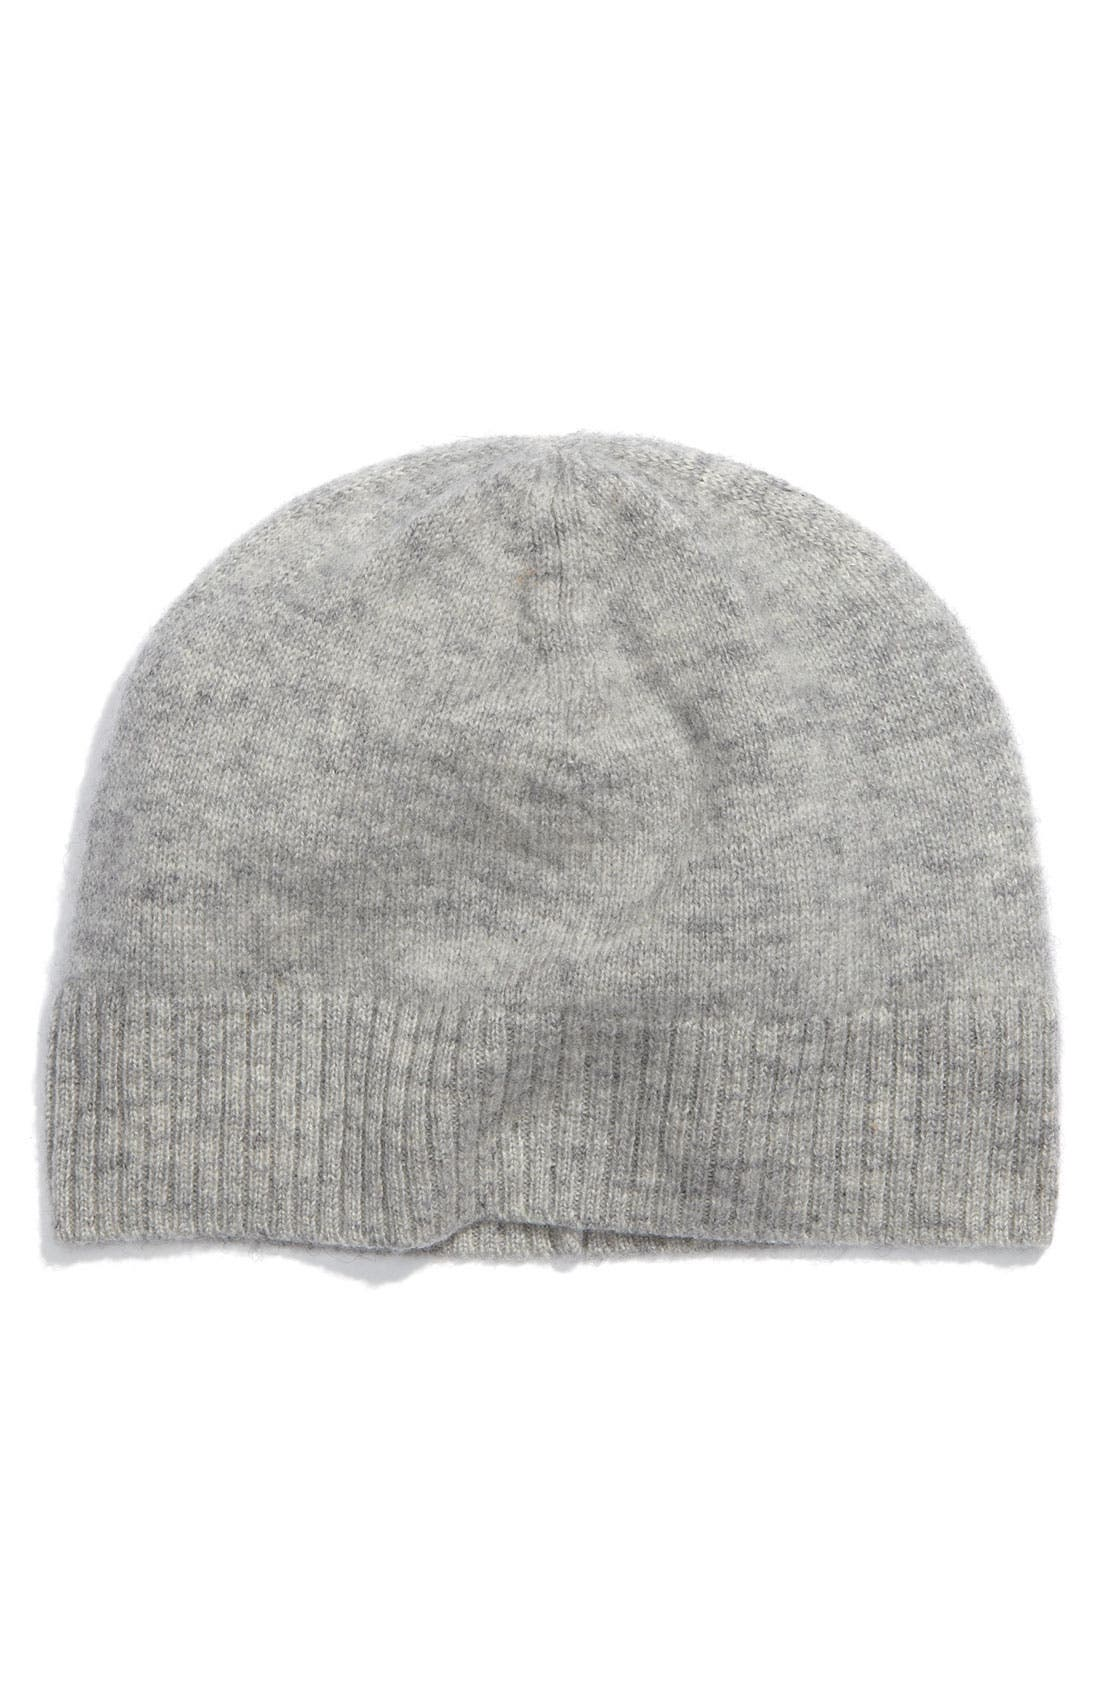 NORDSTROM BABY,                             Cashmere Hat,                             Main thumbnail 1, color,                             020